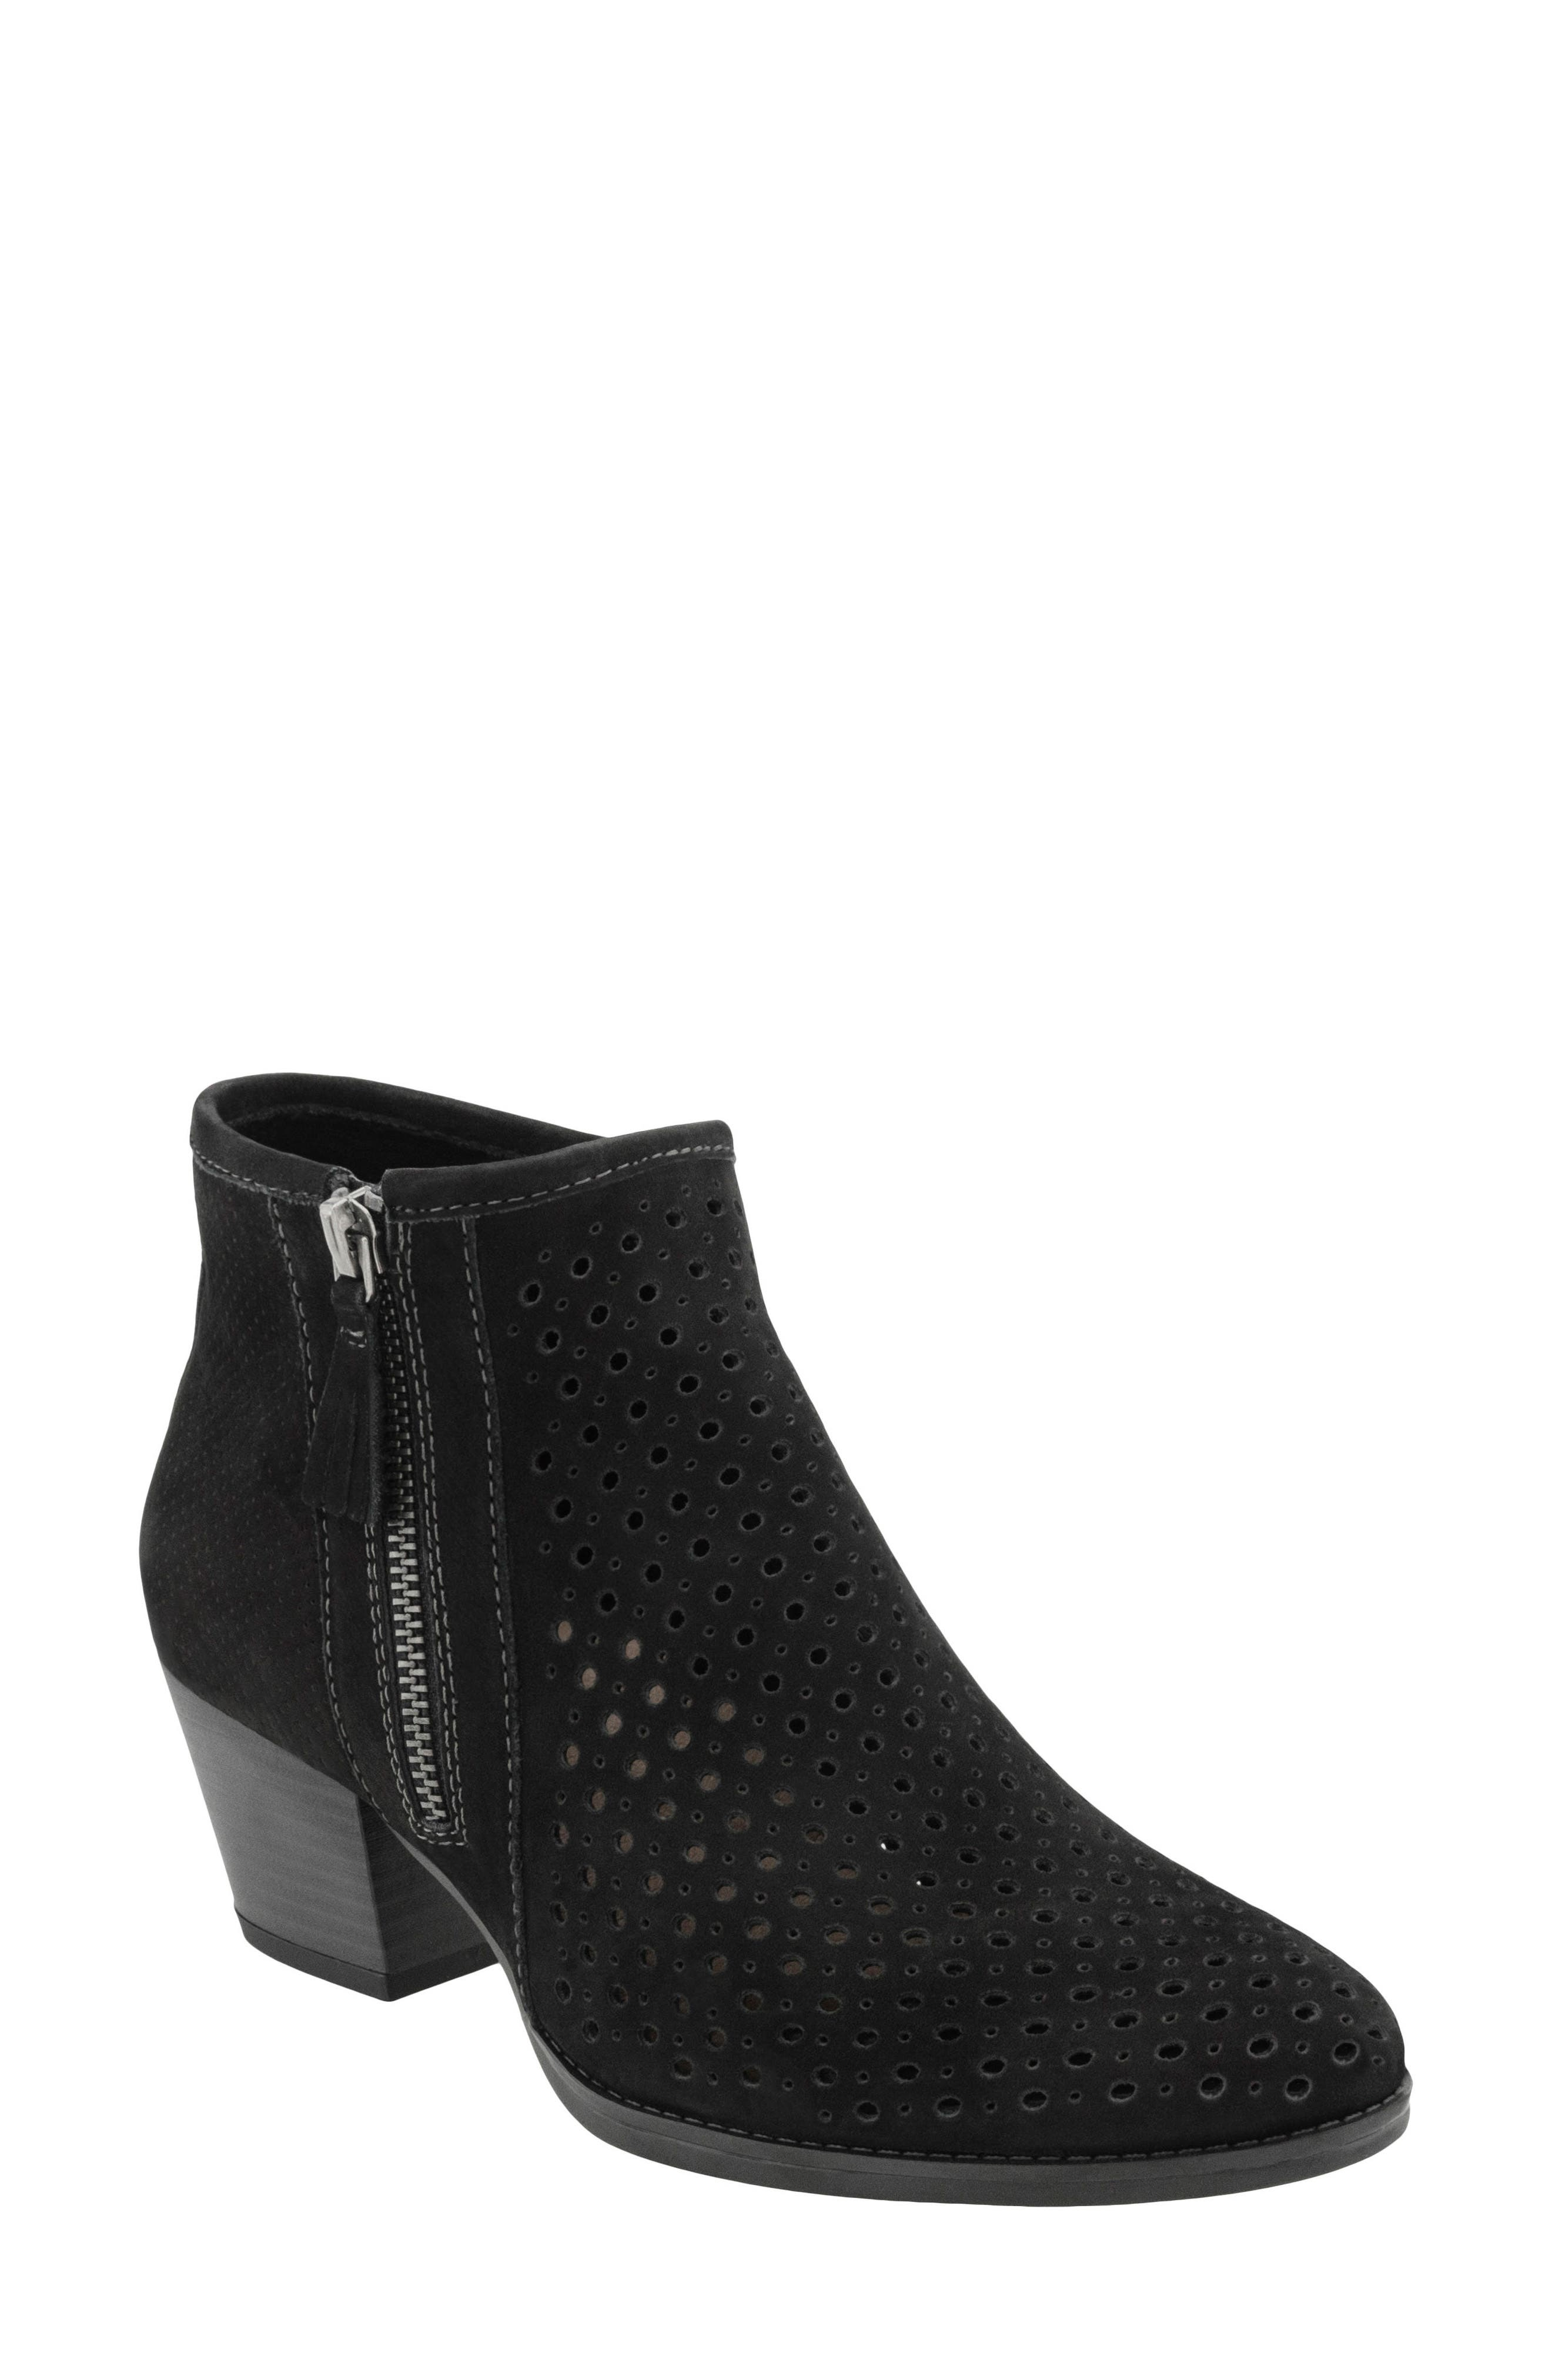 Pineberry Bootie,                         Main,                         color,